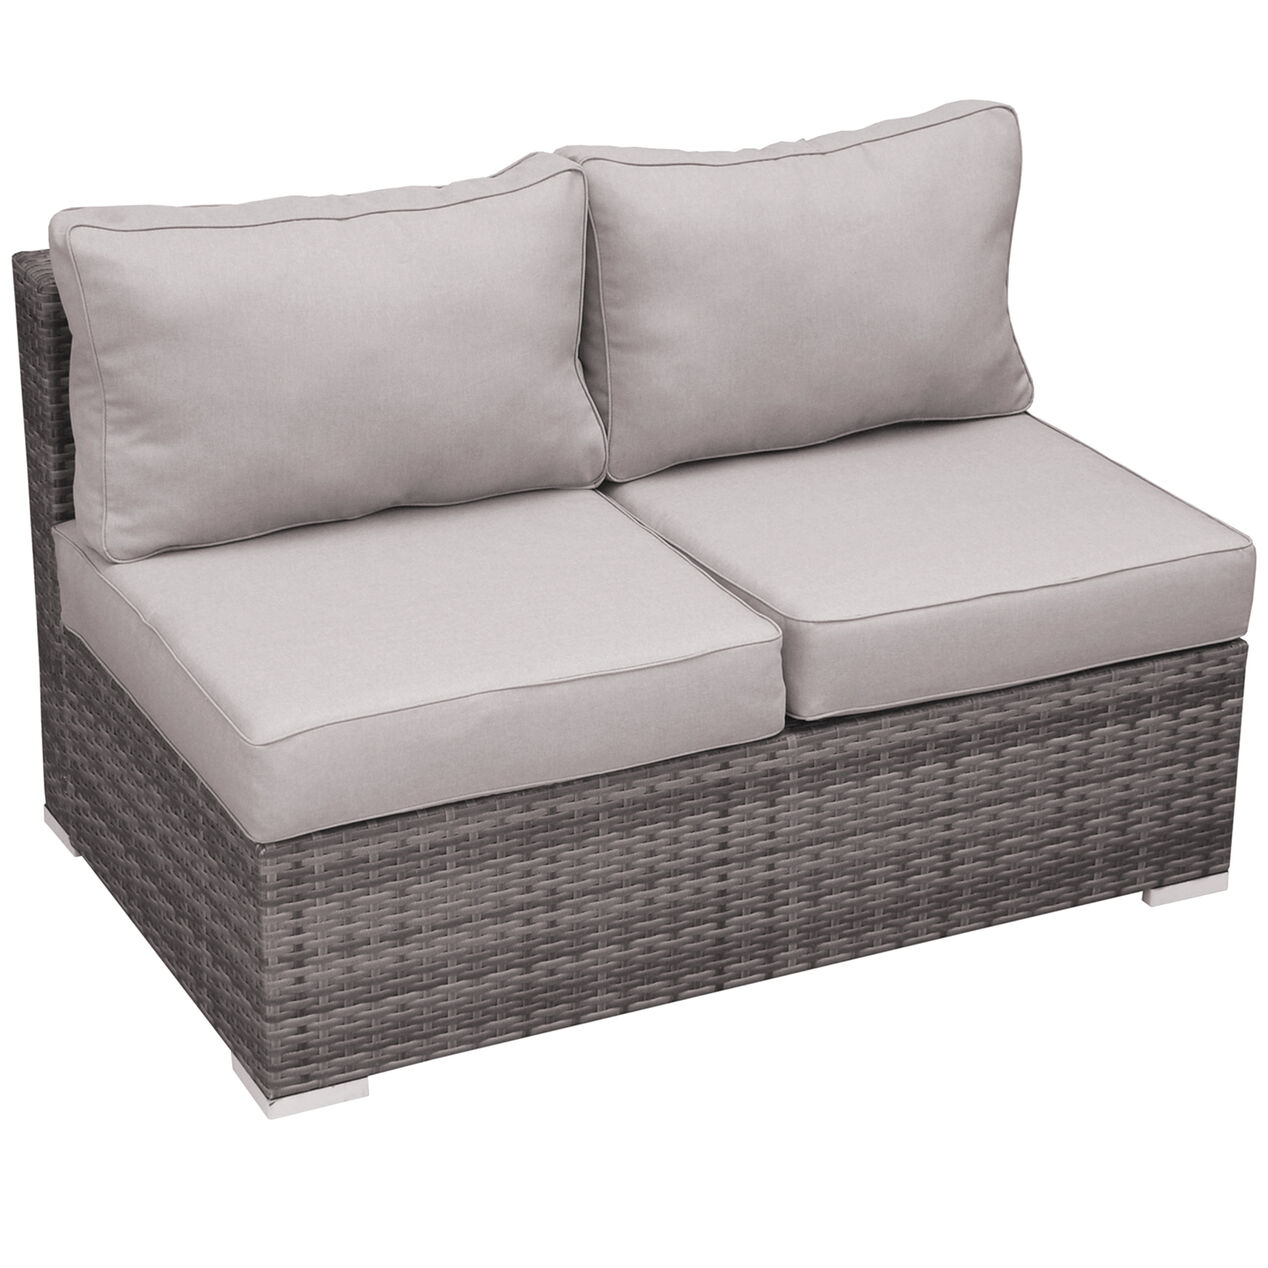 Grey Weston Outdoor Wicker Loveseat At Home